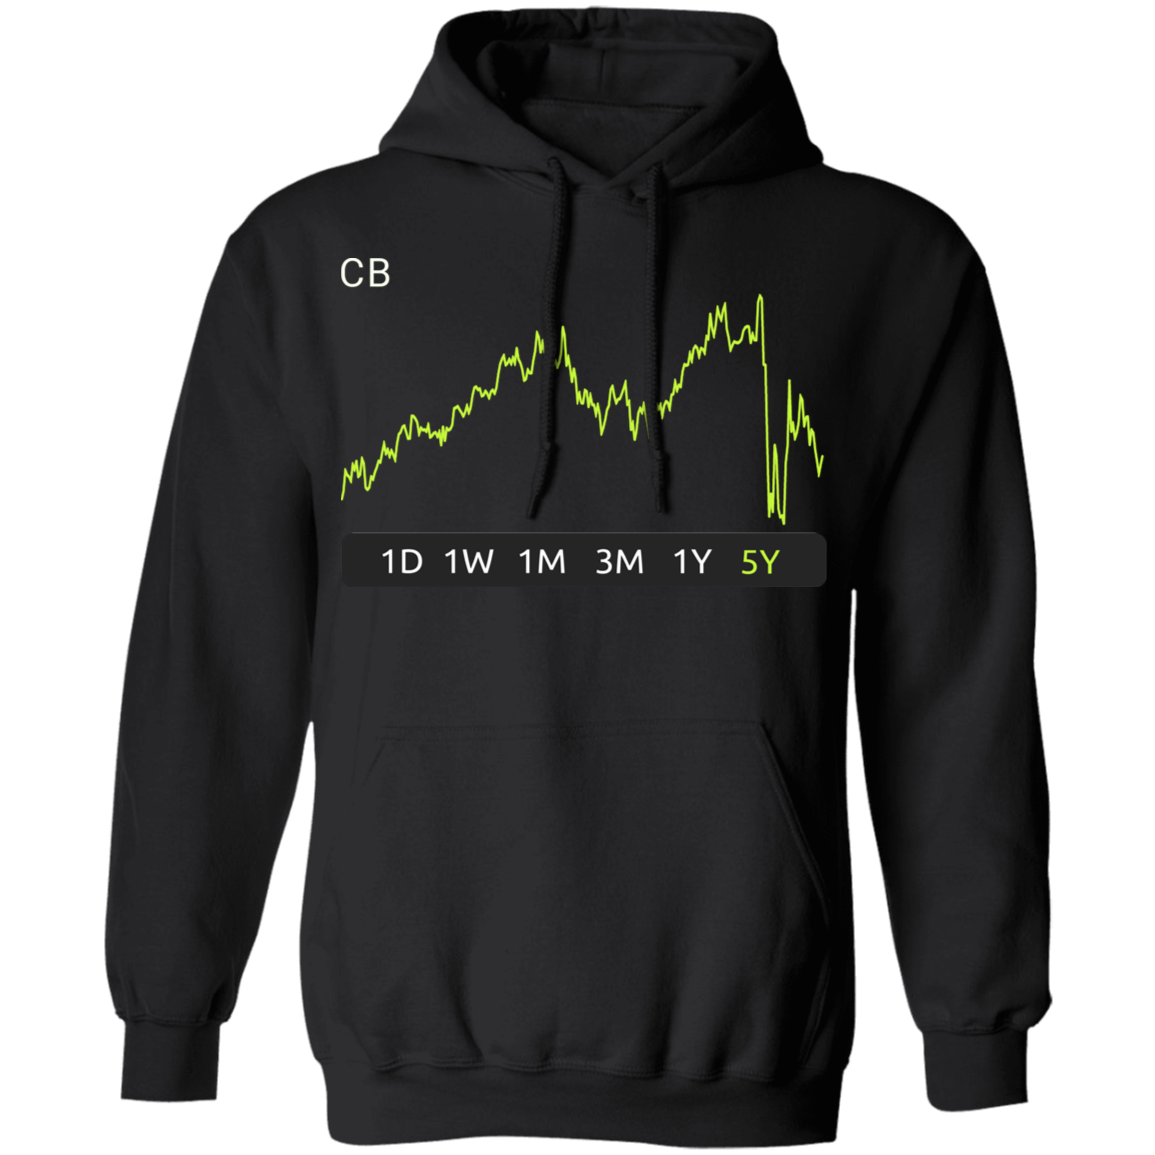 CB Stock 5y Pullover Hoodie